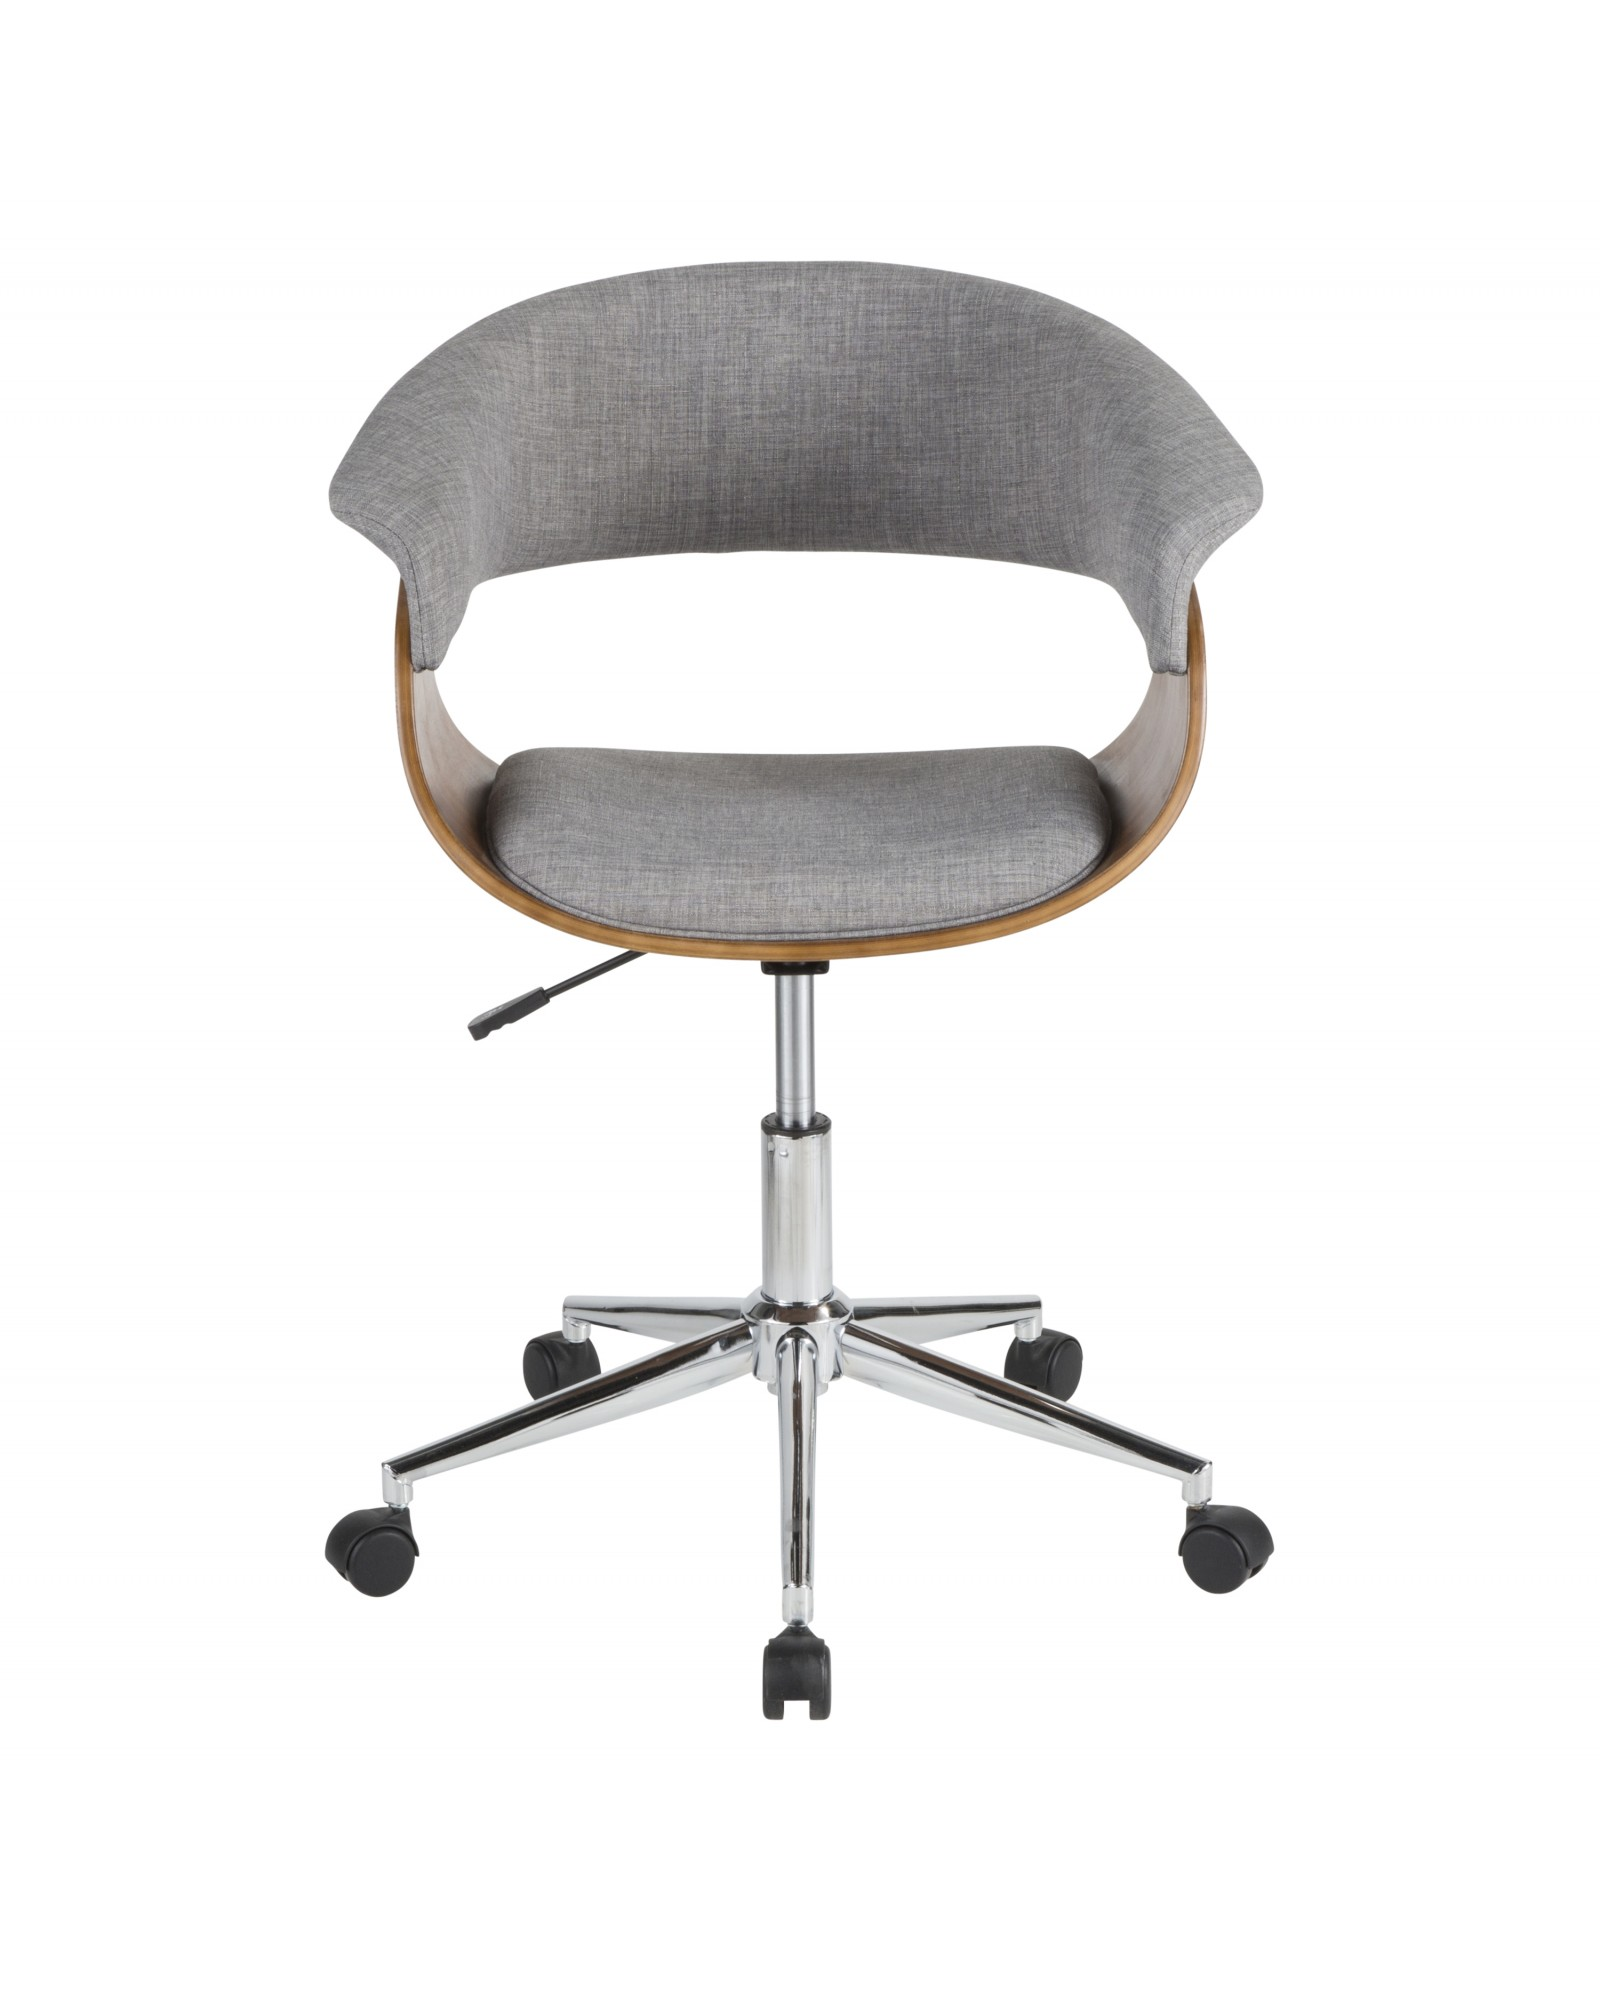 Vintage Mod Mid-Century Modern Office Chair in Walnut Wood and Light Grey Fabric